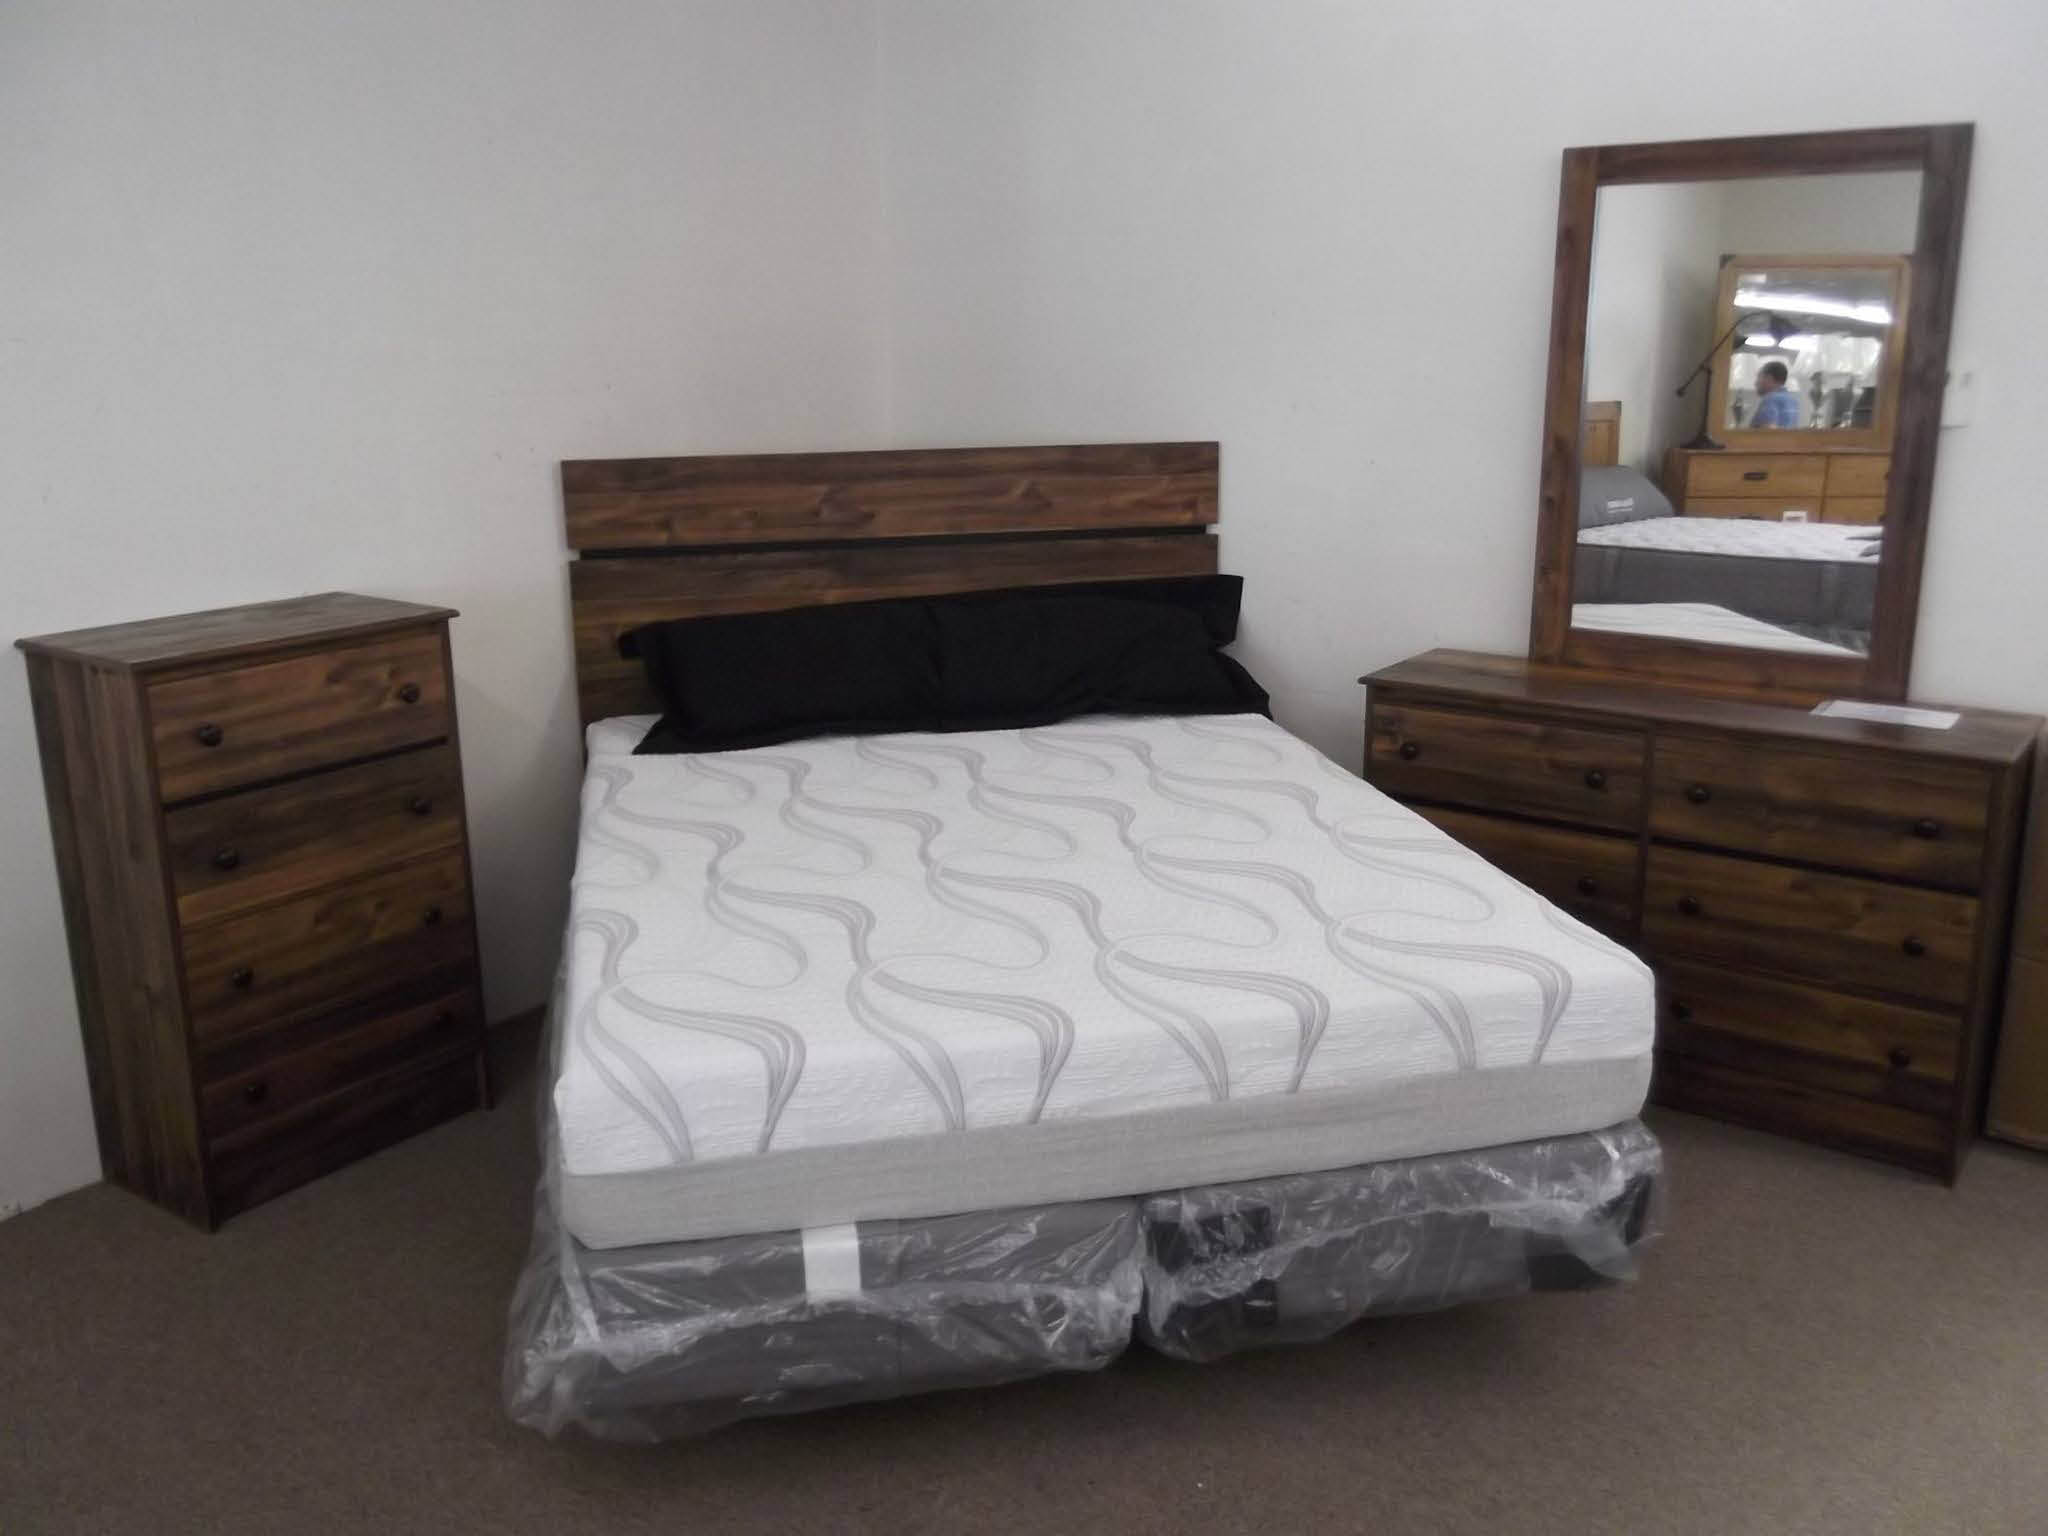 Discount Bedroom Set Near Wopsononock